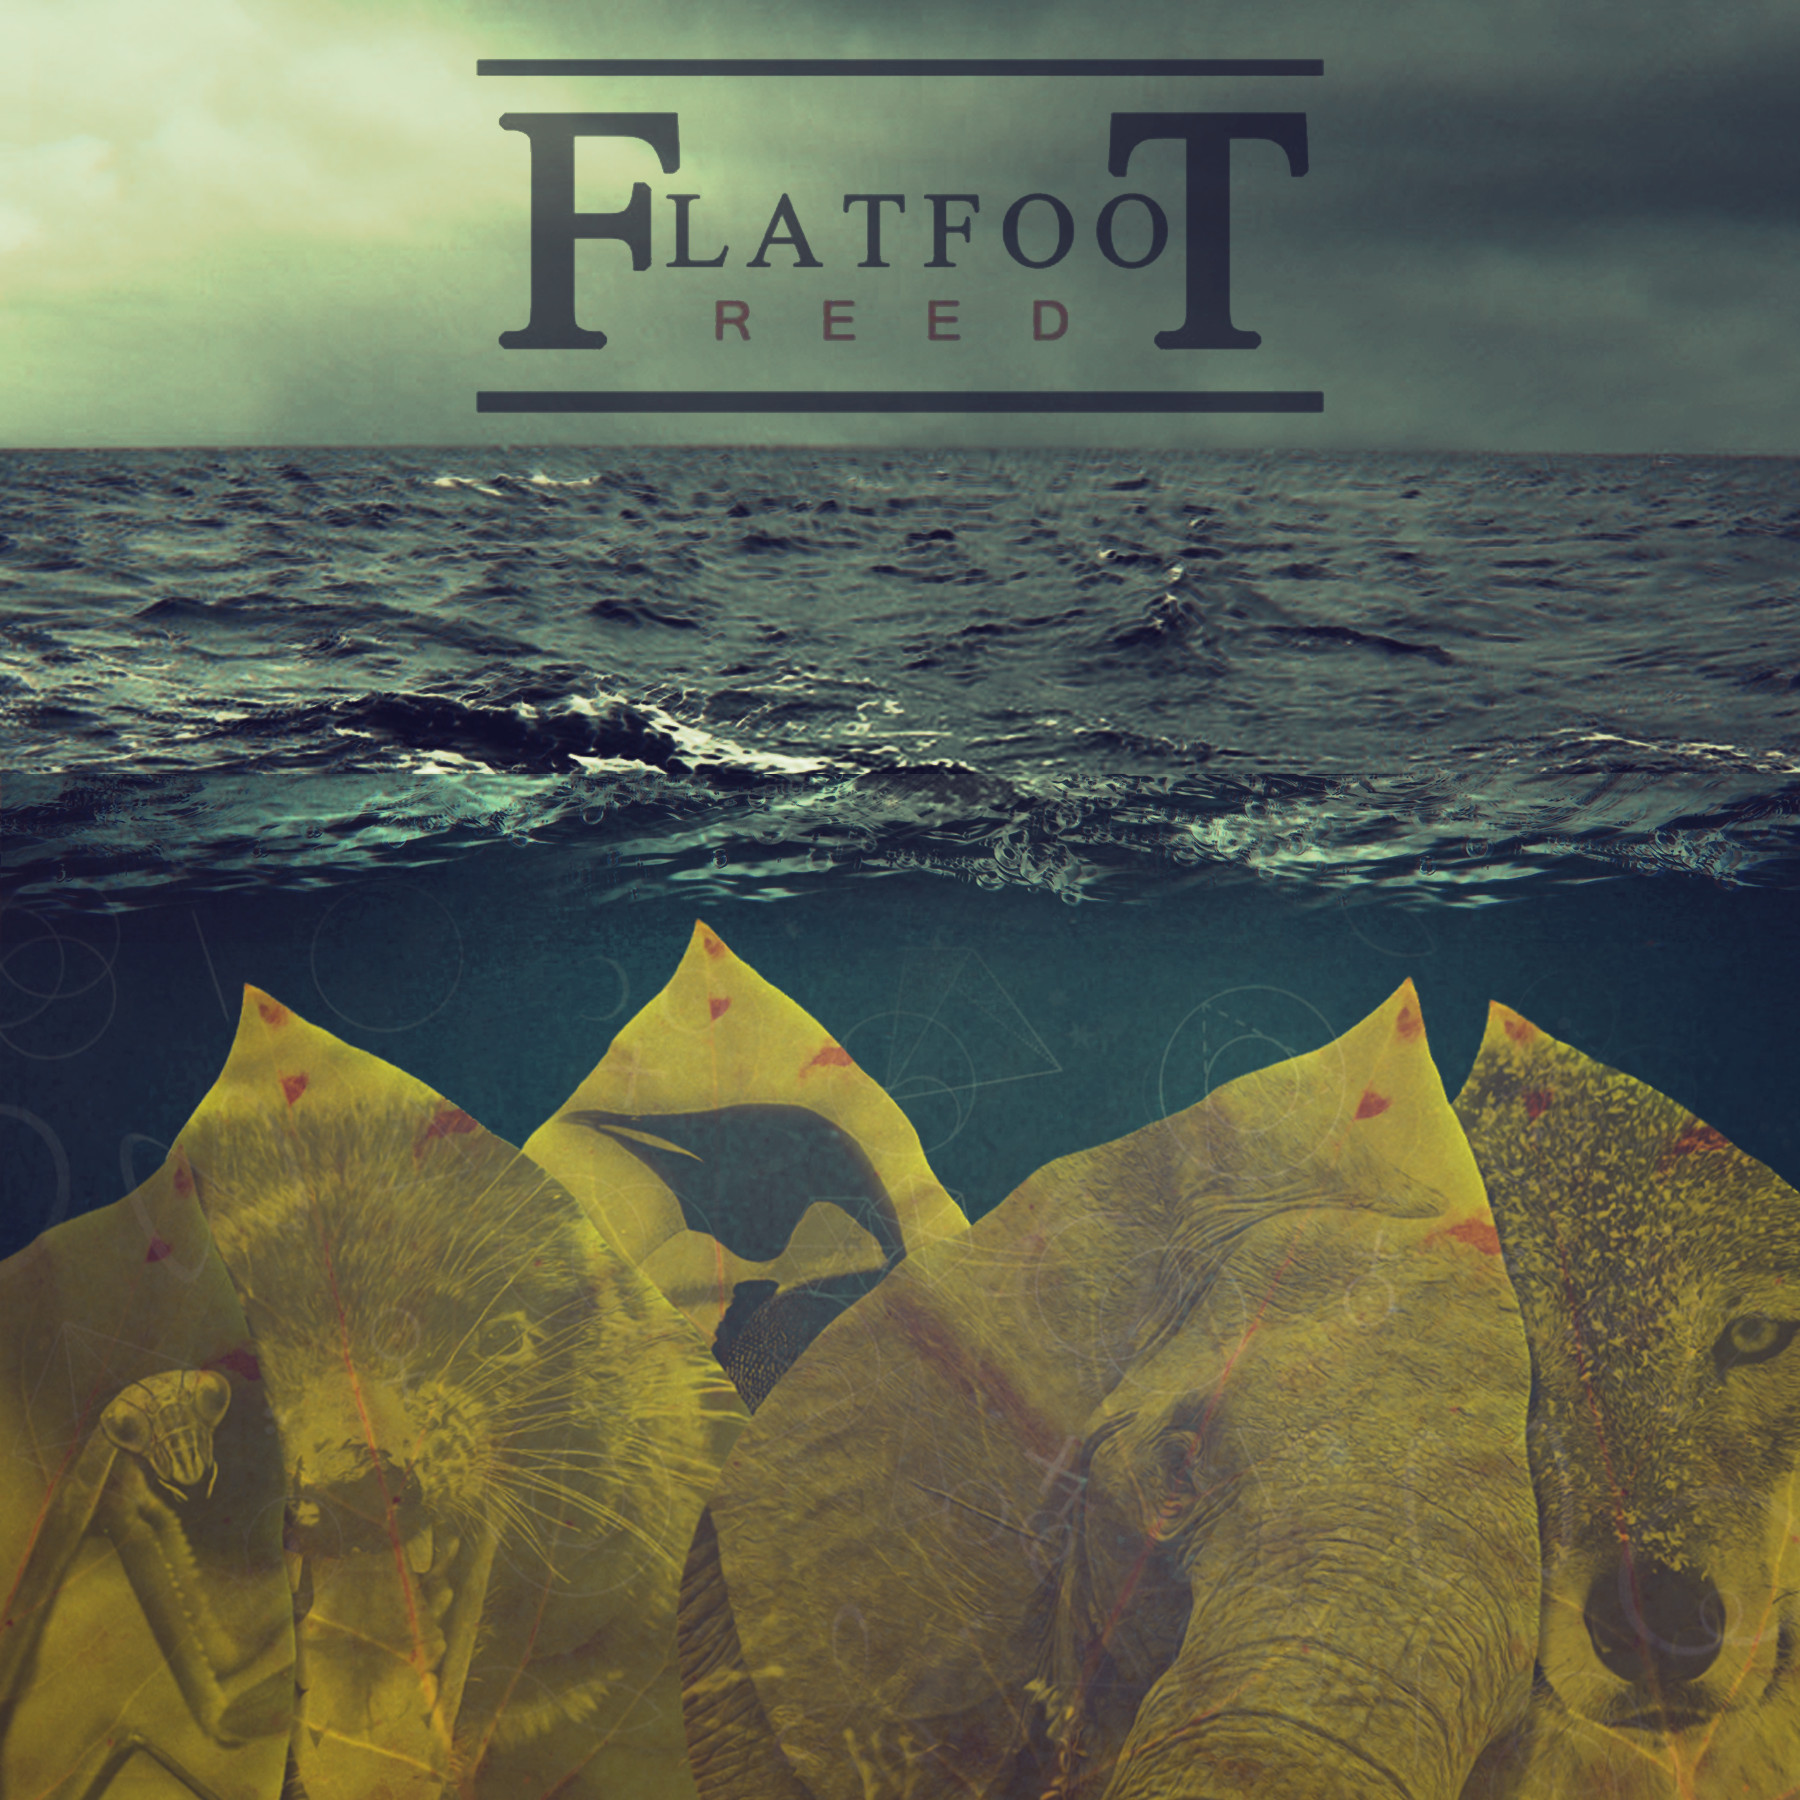 ALBUM REVIEW: Flatfoot Reed keep 90s alt rock alive with first EP